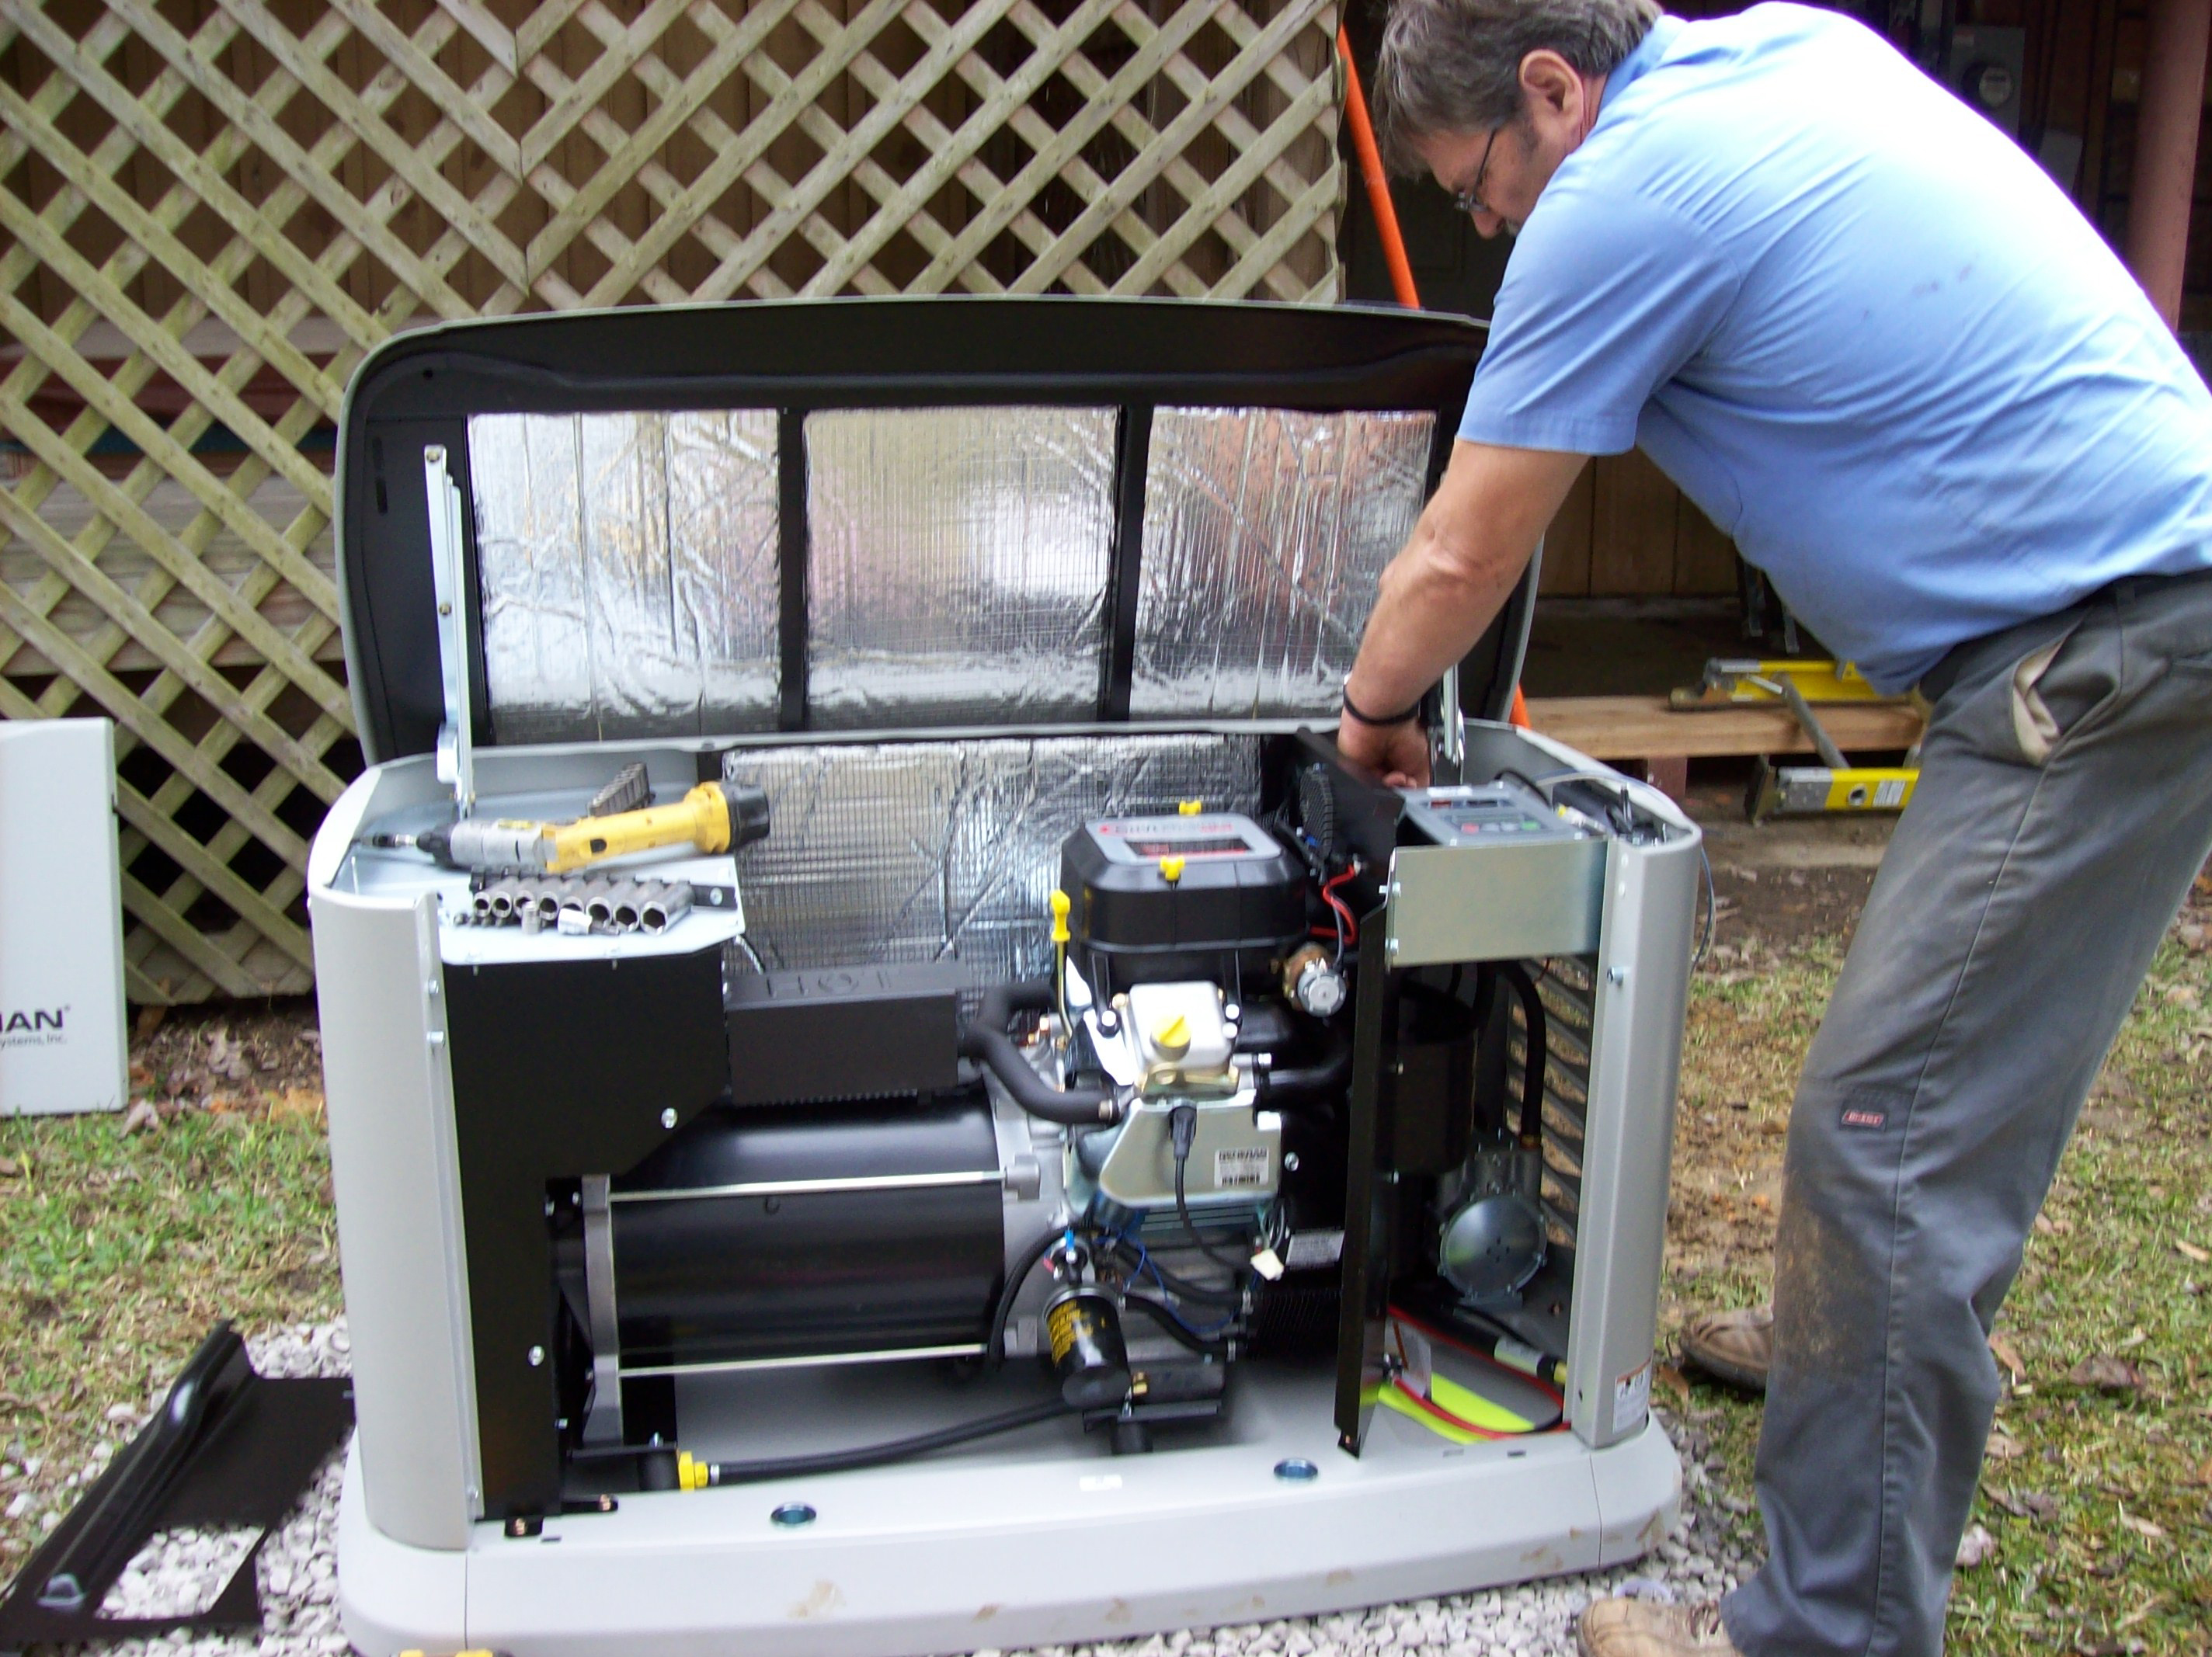 Electricians in Toronto Types of backup generators in Toronto